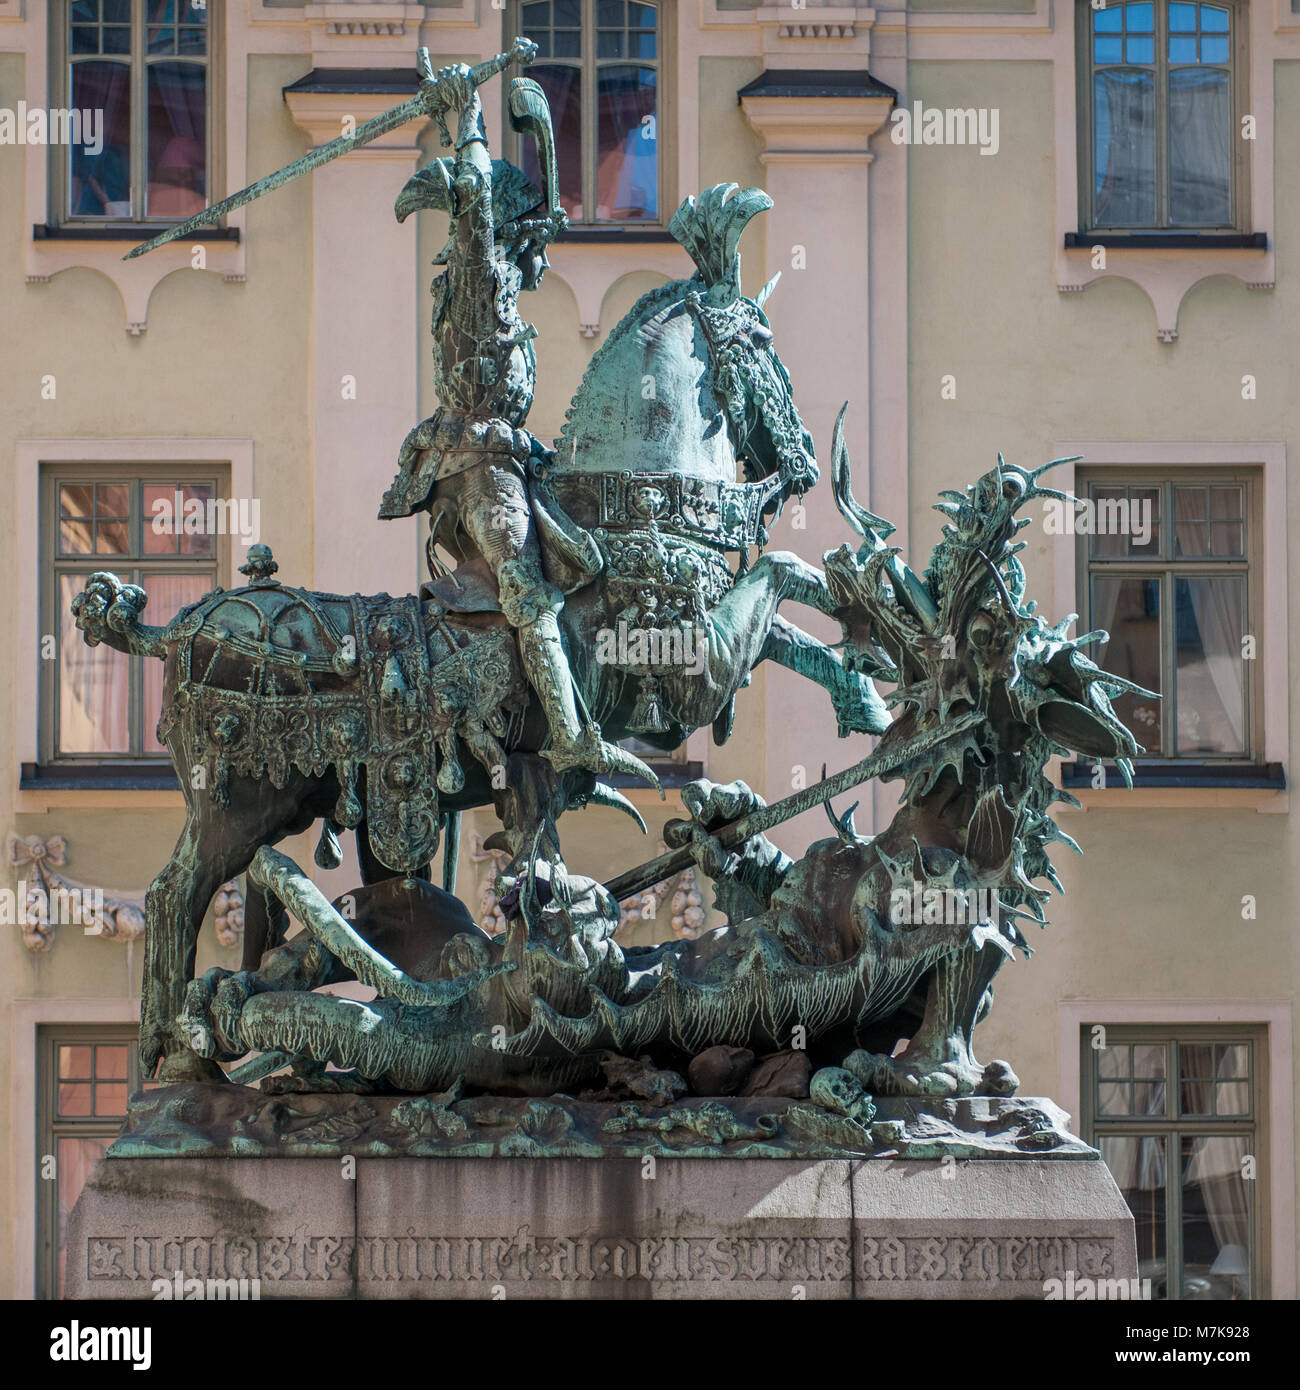 Statue of Saint George and the dragon in medieval Old Town of Stockholm. The historic Old Town is a major tourist - Stock Image